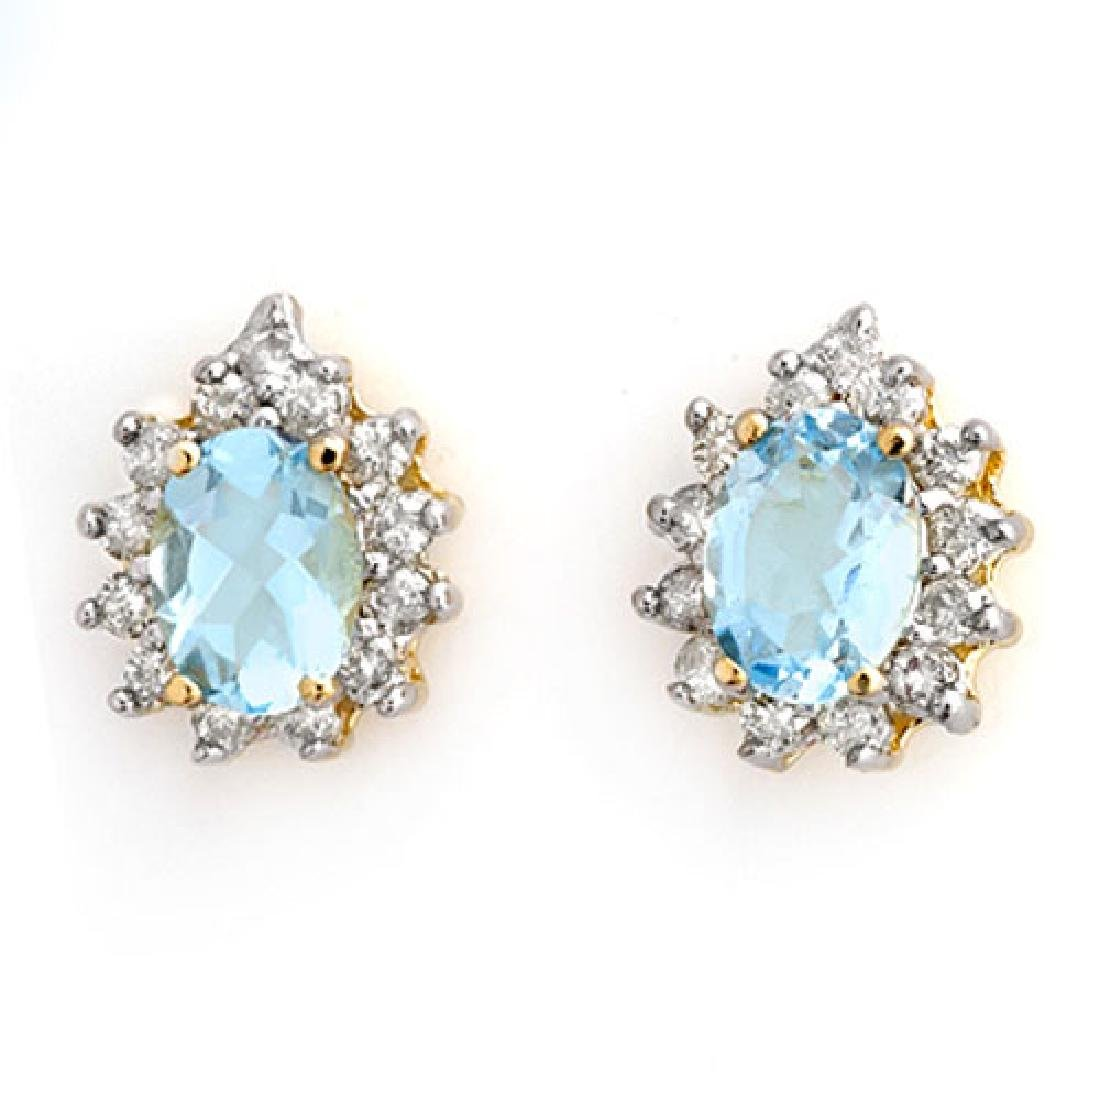 3.75 CTW Aquamarine & Diamond Earrings 14K Yellow Gold